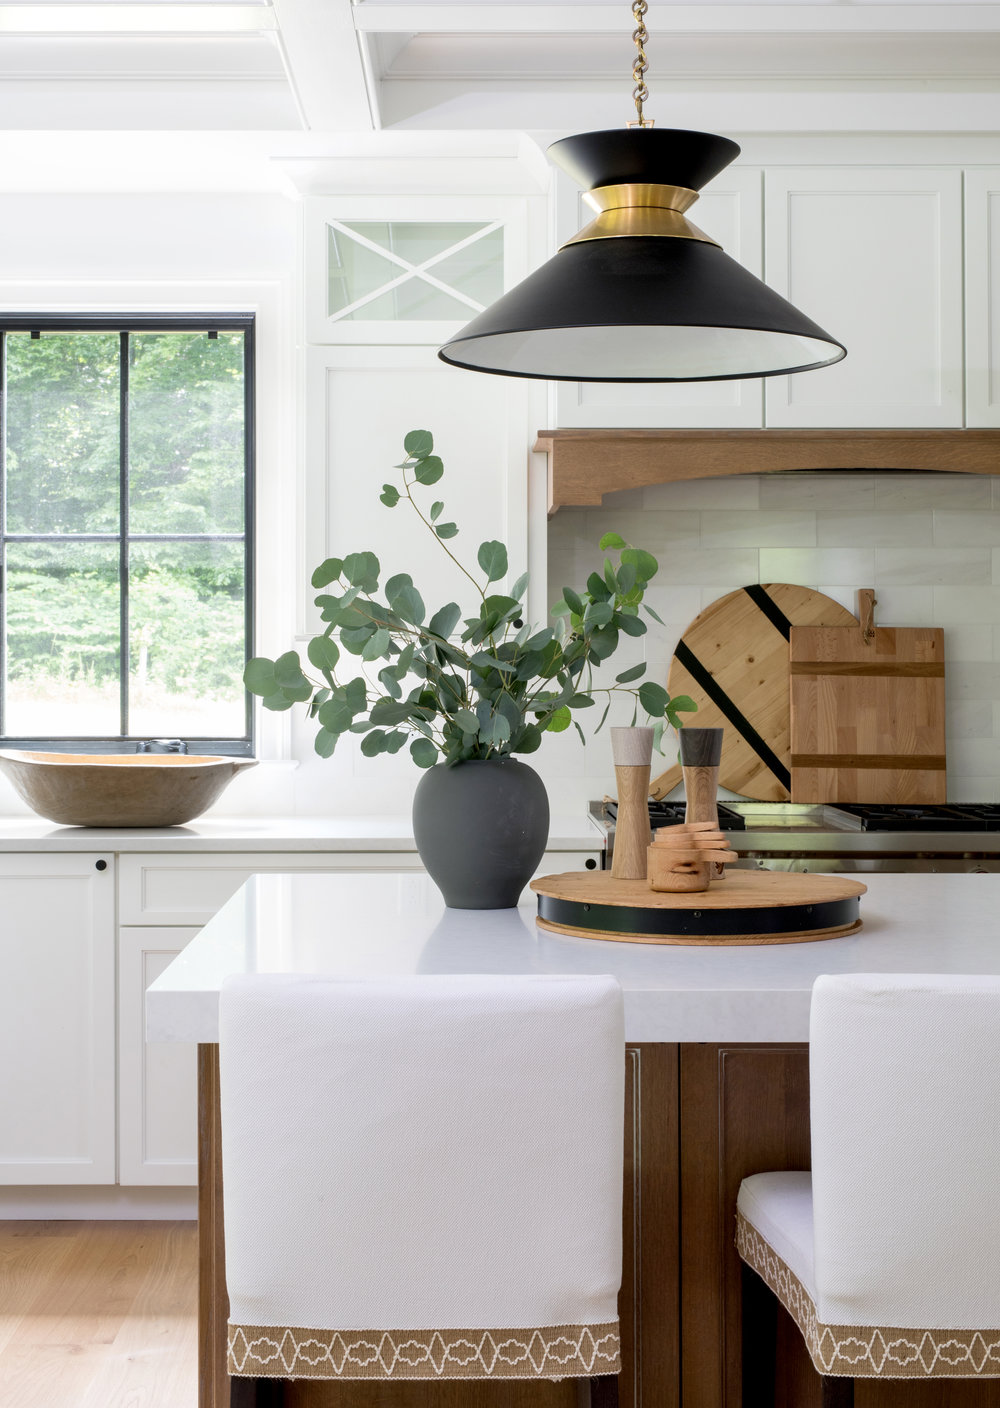 House Tour-  I Love This House's Modern Twist on Classic Traditional Style 7.jpeg